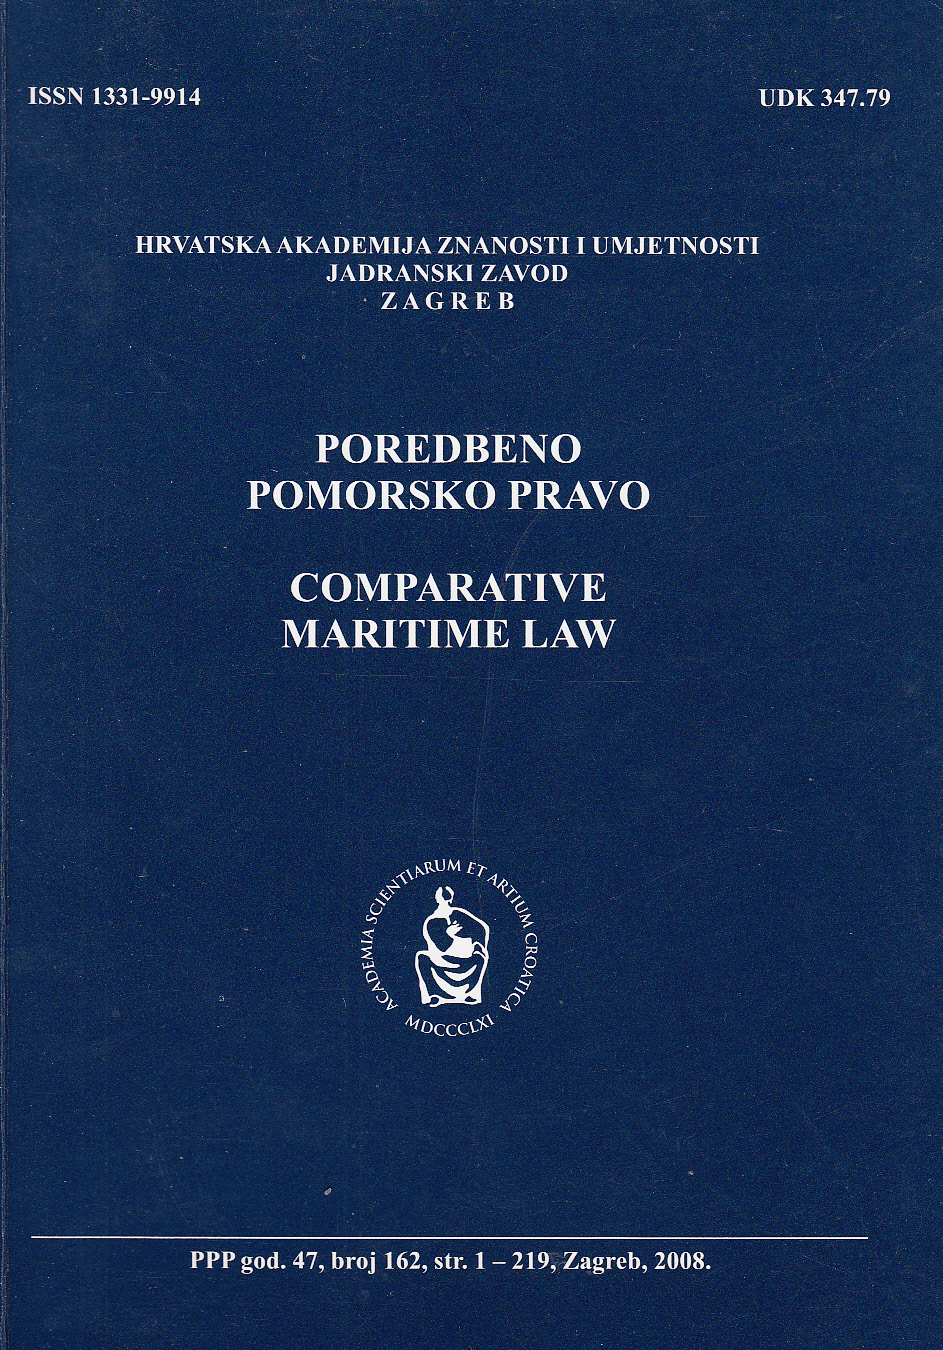 Carriage of passengers in Croatia - National legislation and EU law